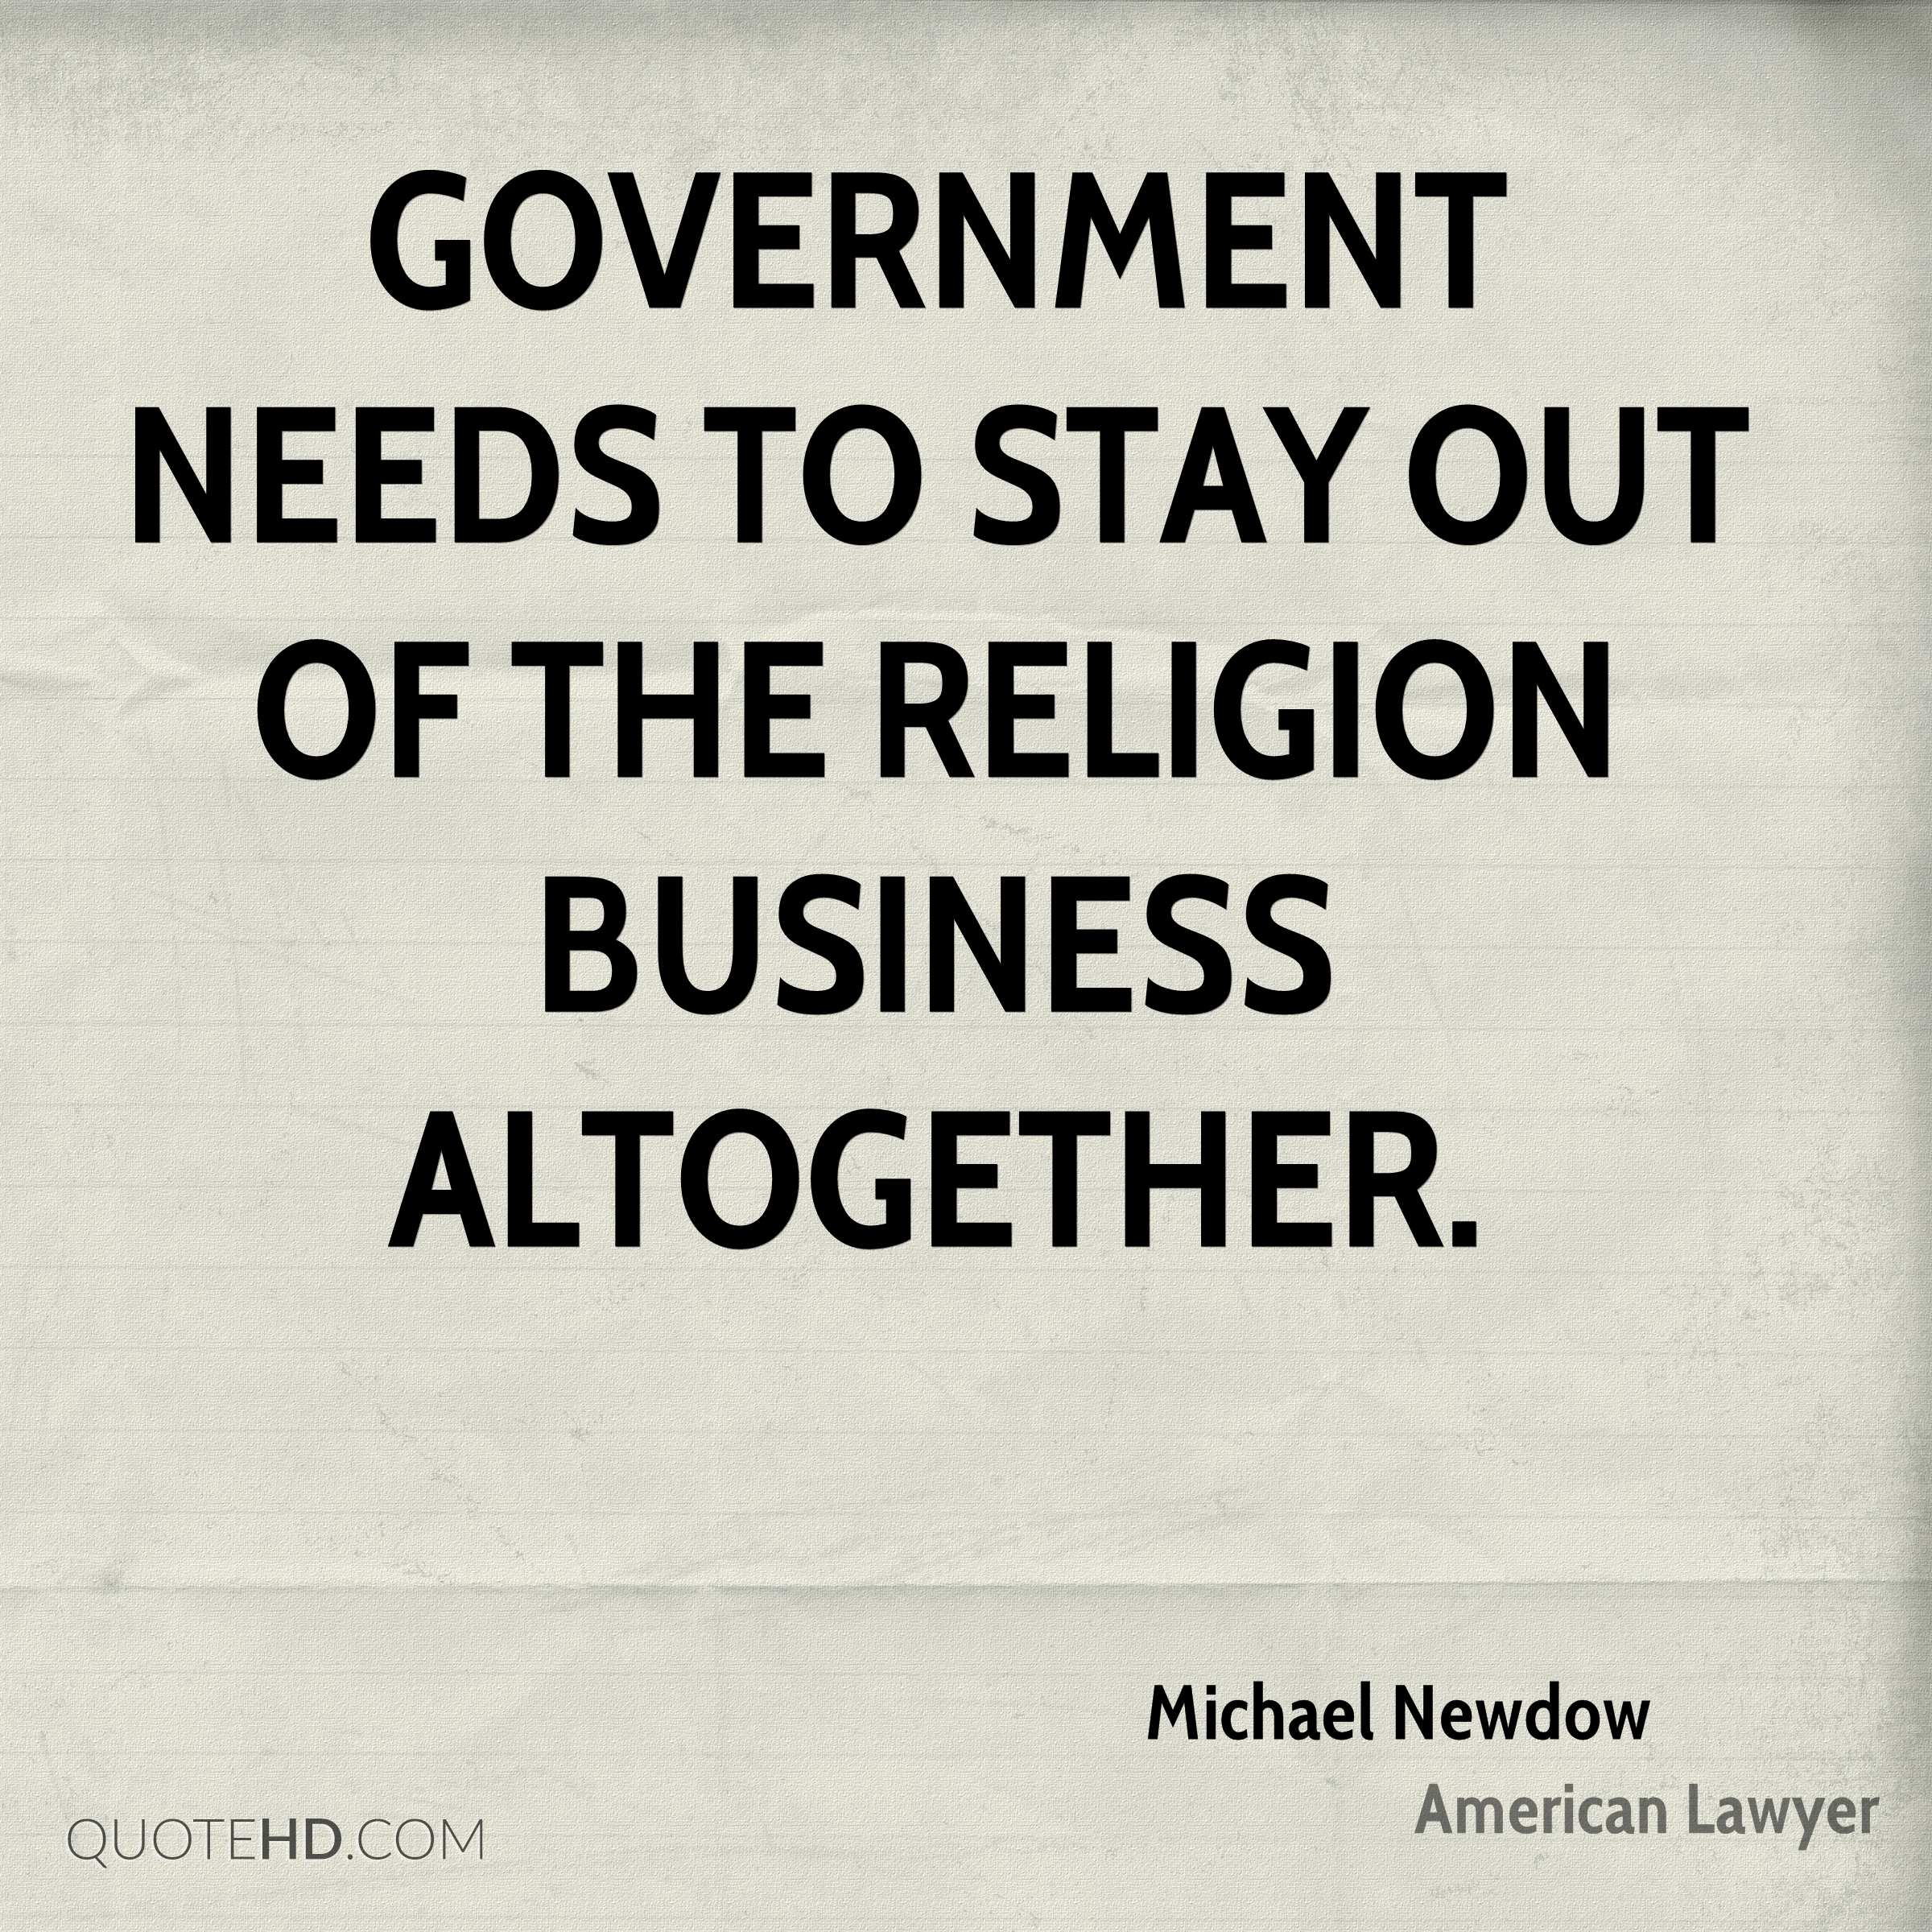 Government needs to stay out of the religion business altogether.